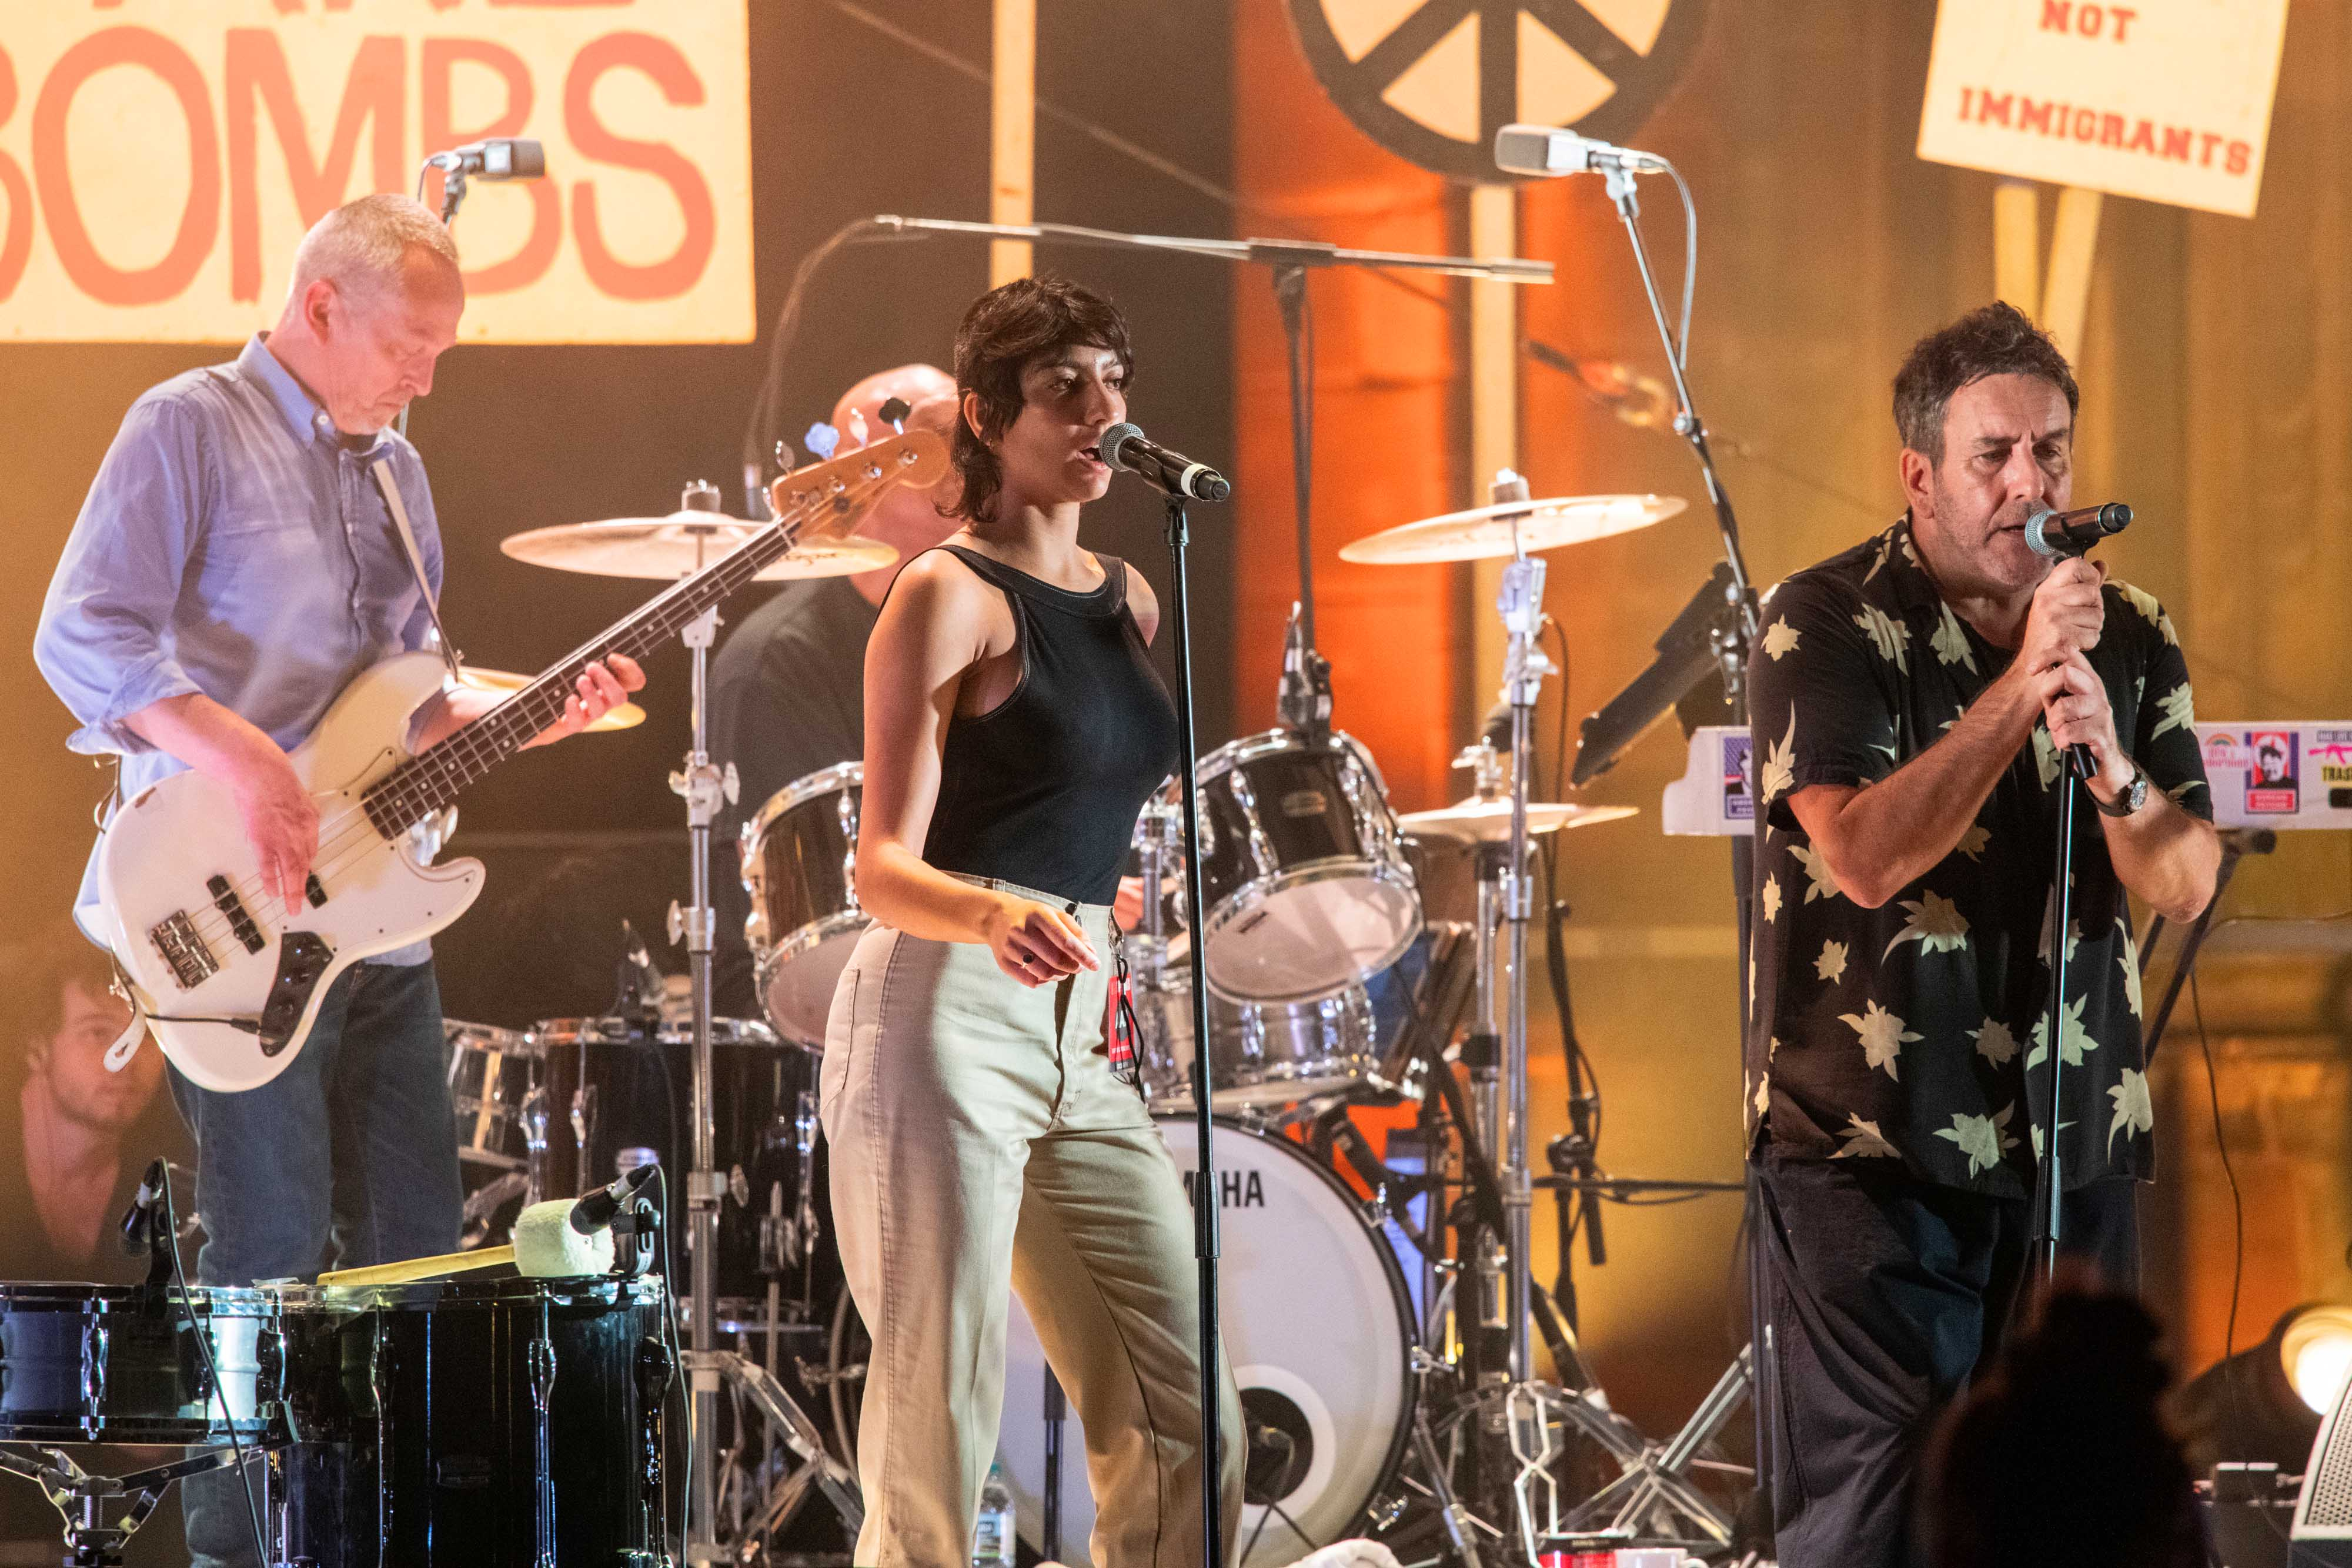 9 July 2019: Saffiyah Khan and The Specials perform live at Coventry Cathedral ruins in Coventry, England, during the band's 40th anniversary tour. (Photograph by Jim Bennett/Getty Images)